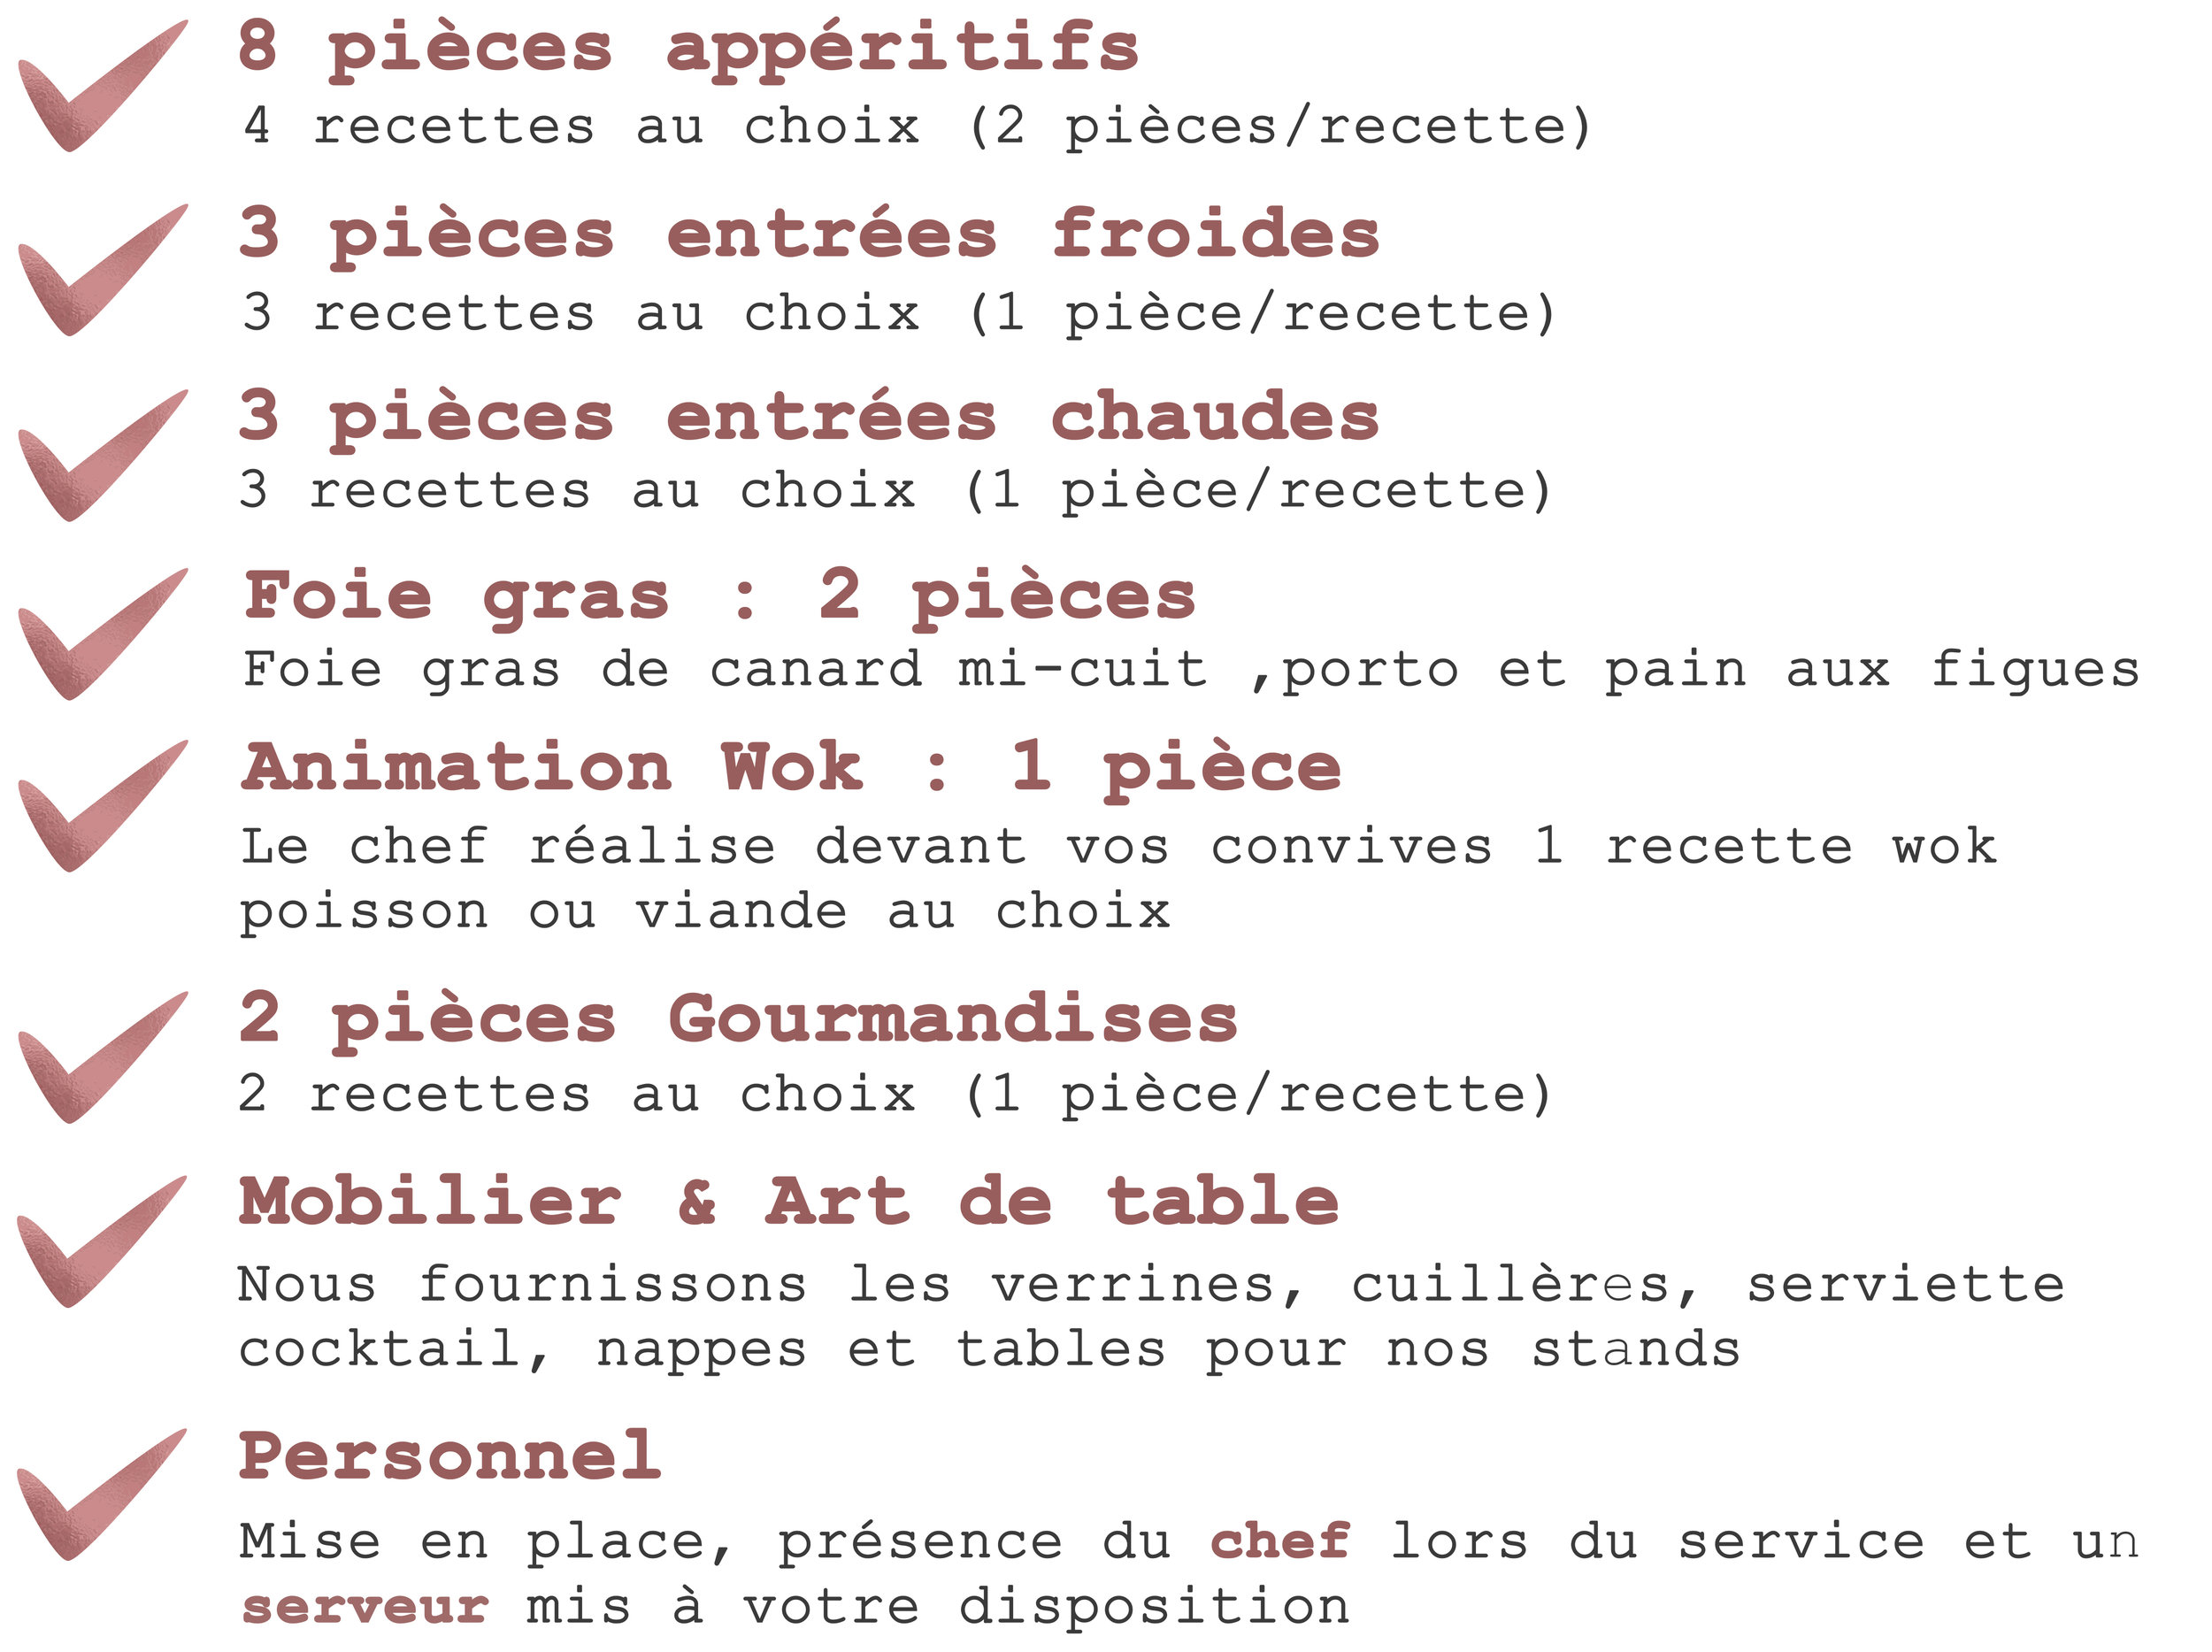 Collection épicurien texte.jpg